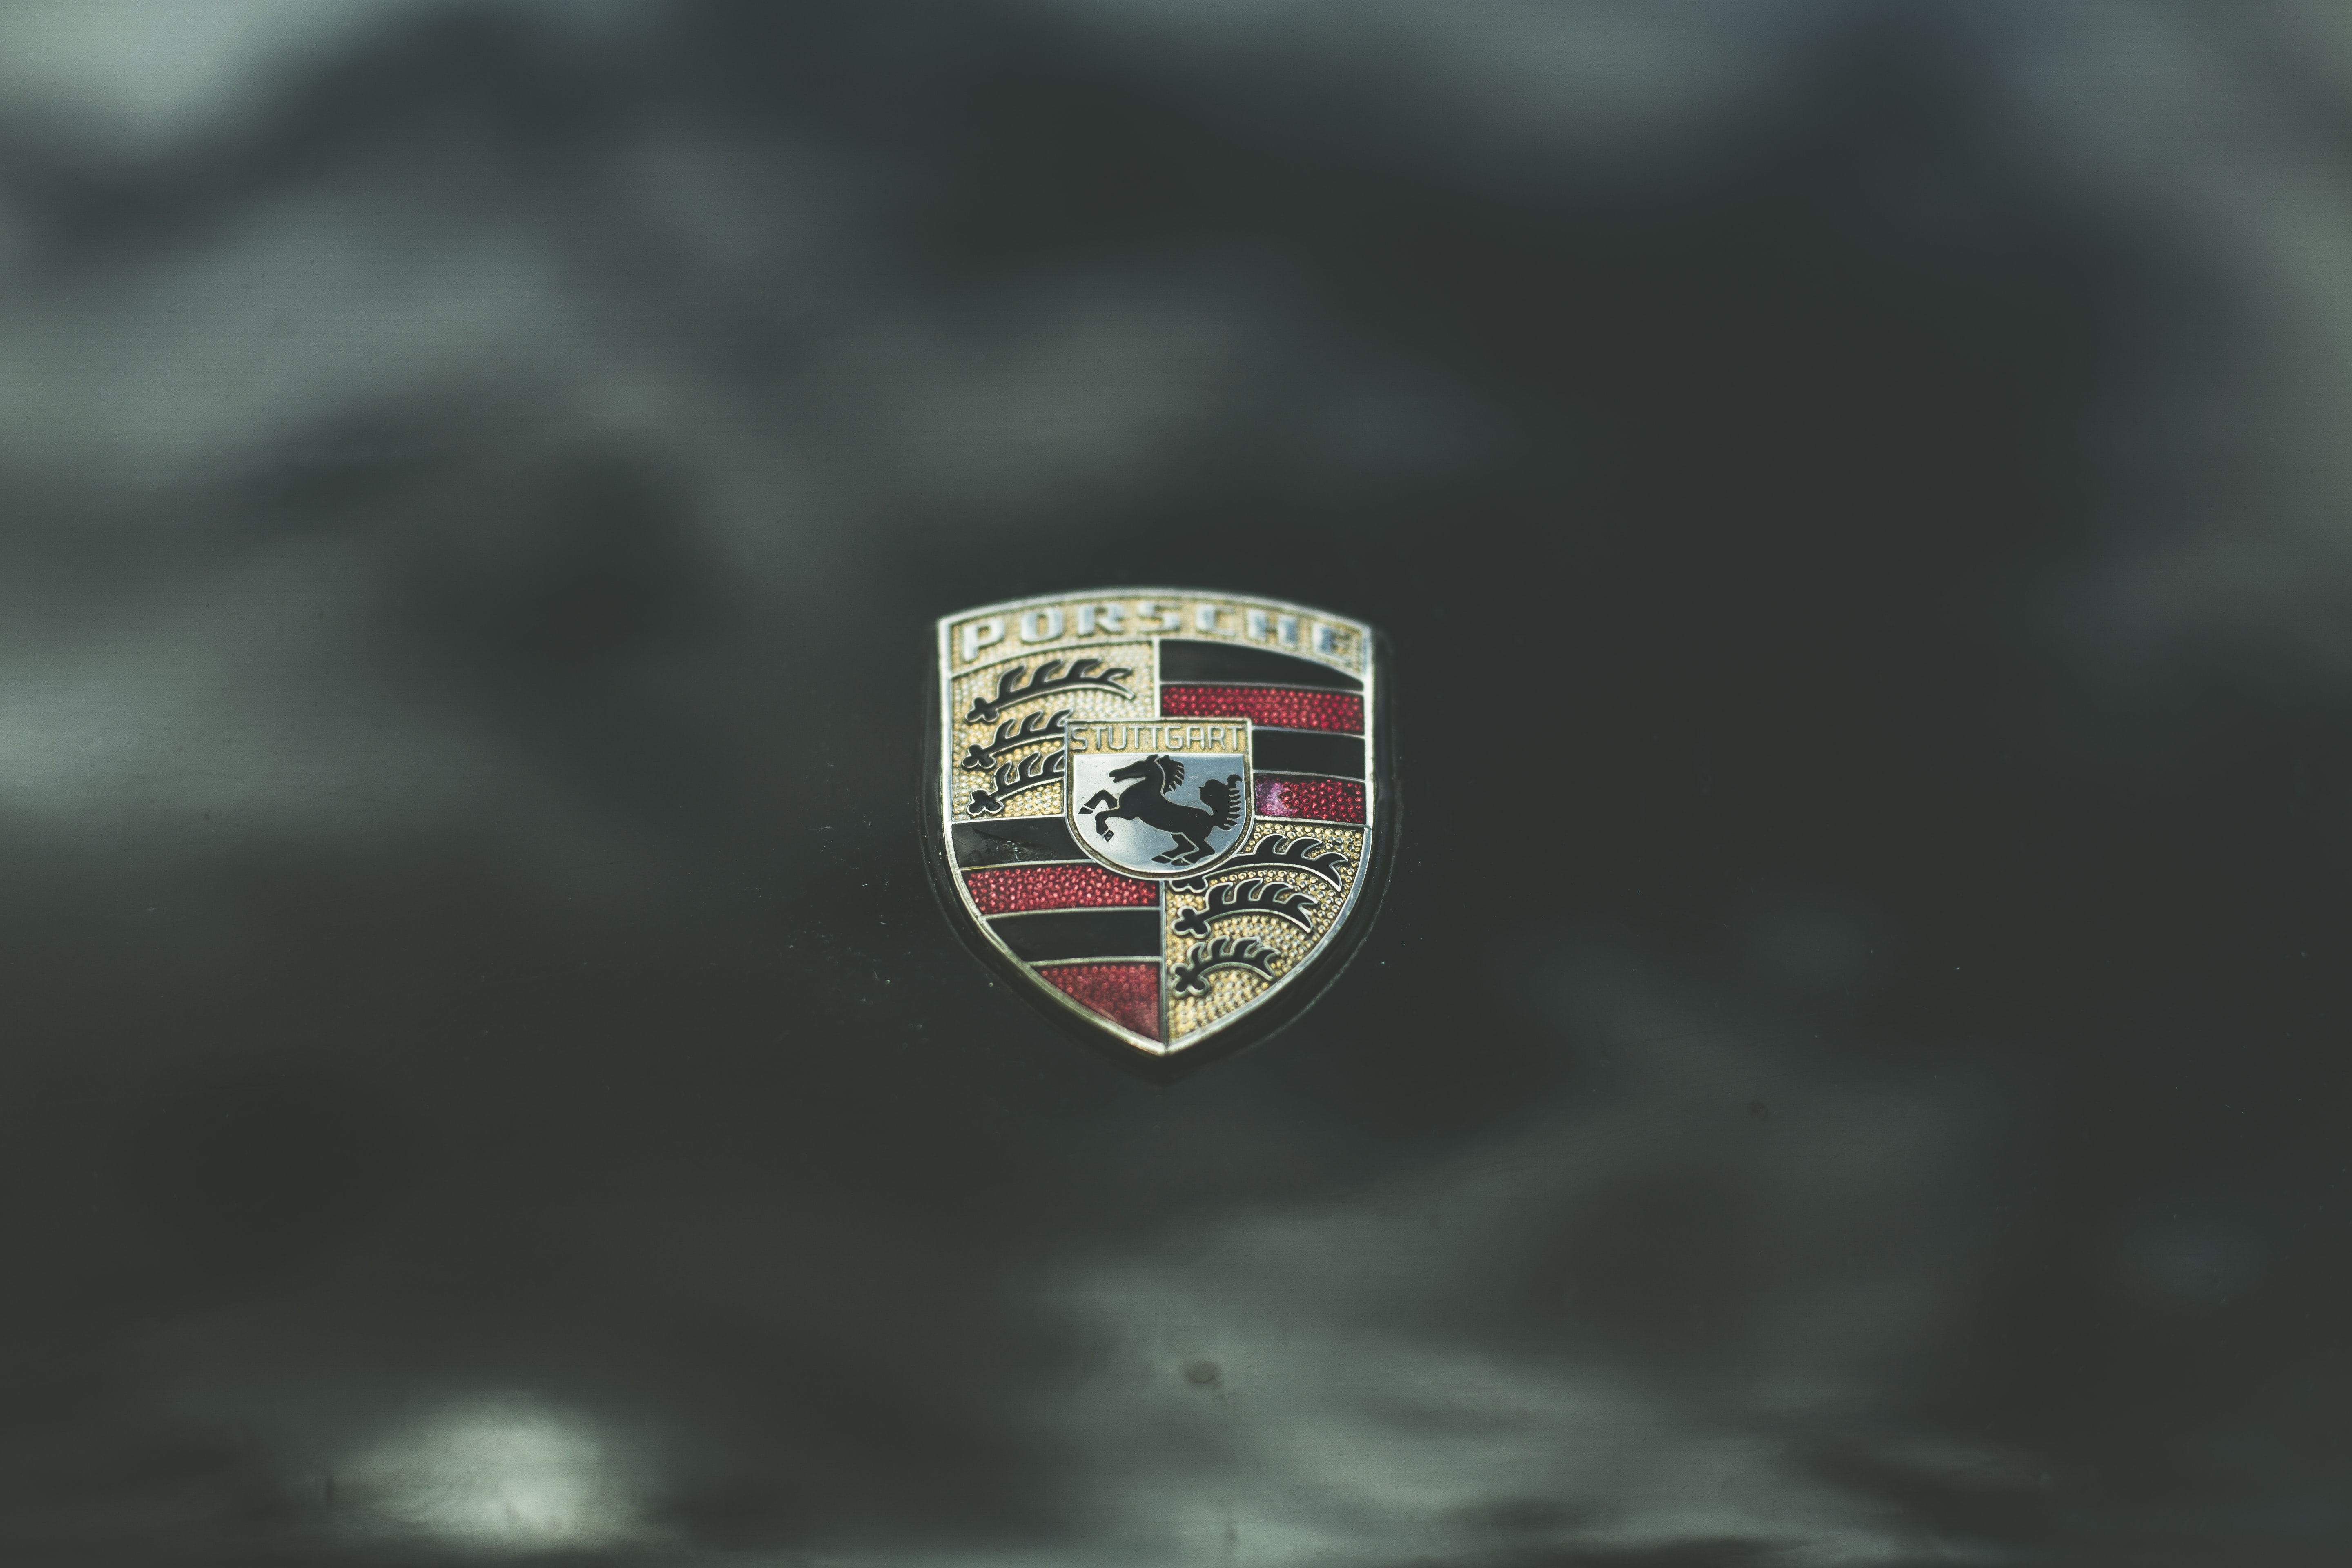 Porsche digital wallpaper